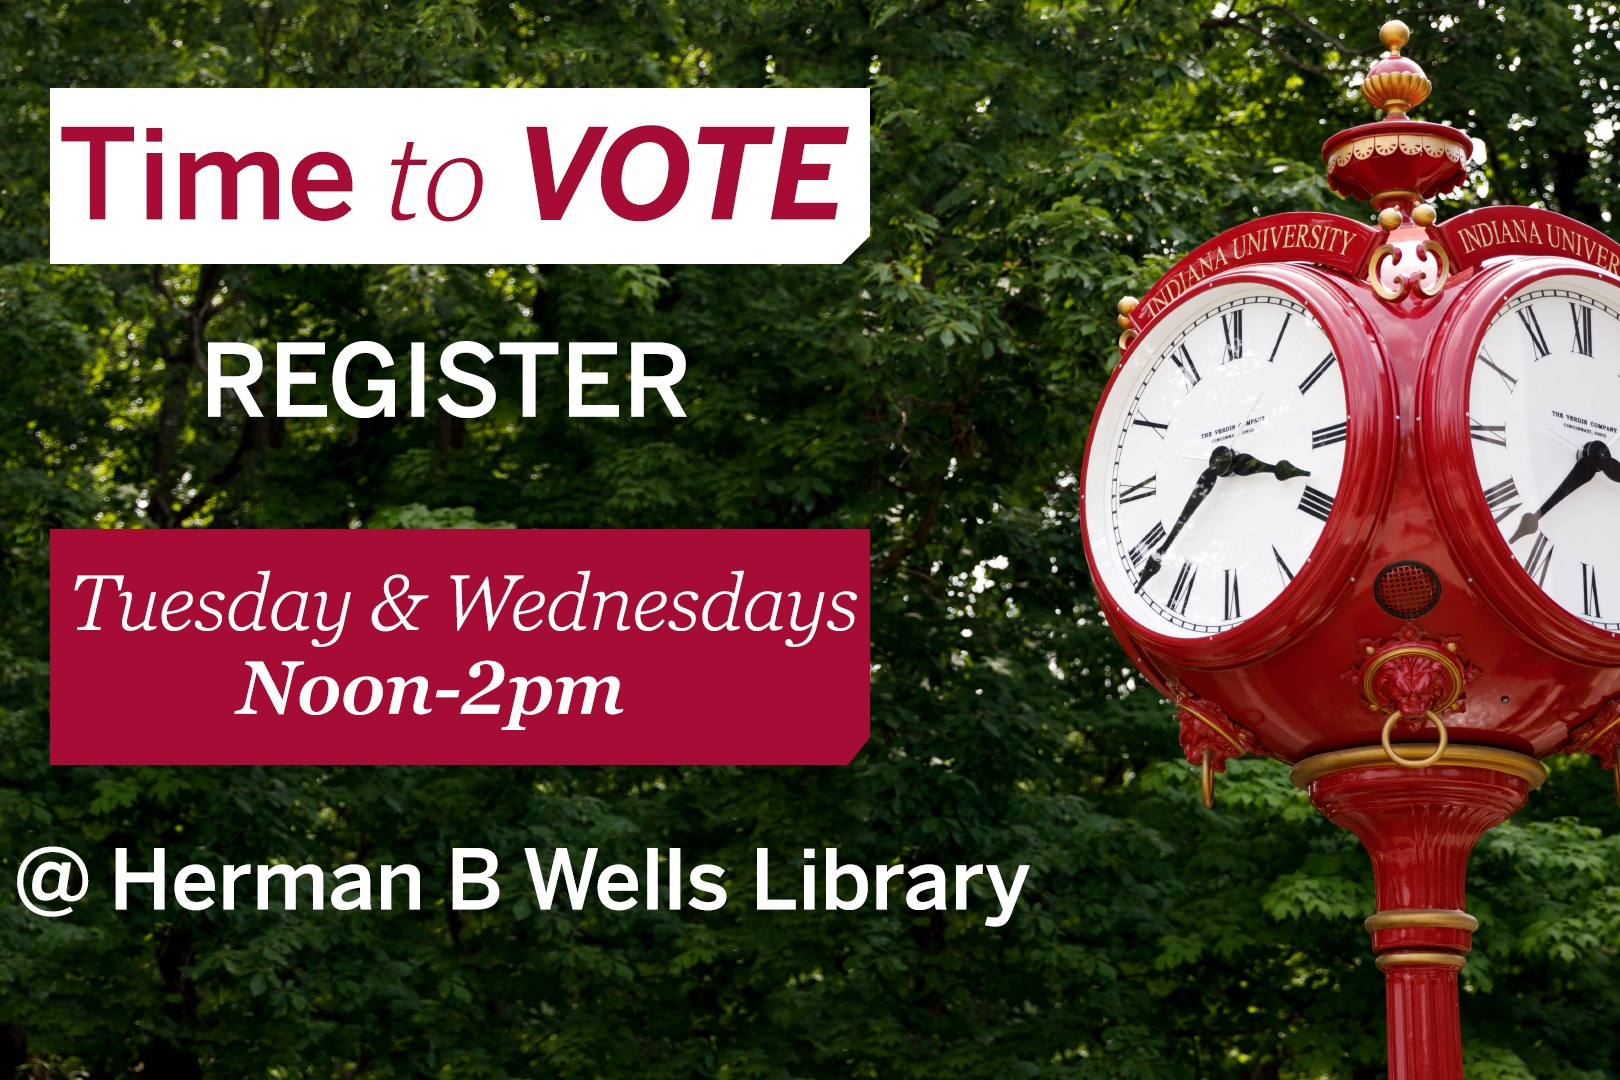 Time to Vote. Register Tuesday & Wednesdays Noon-2pm @ Herman B Wells Library